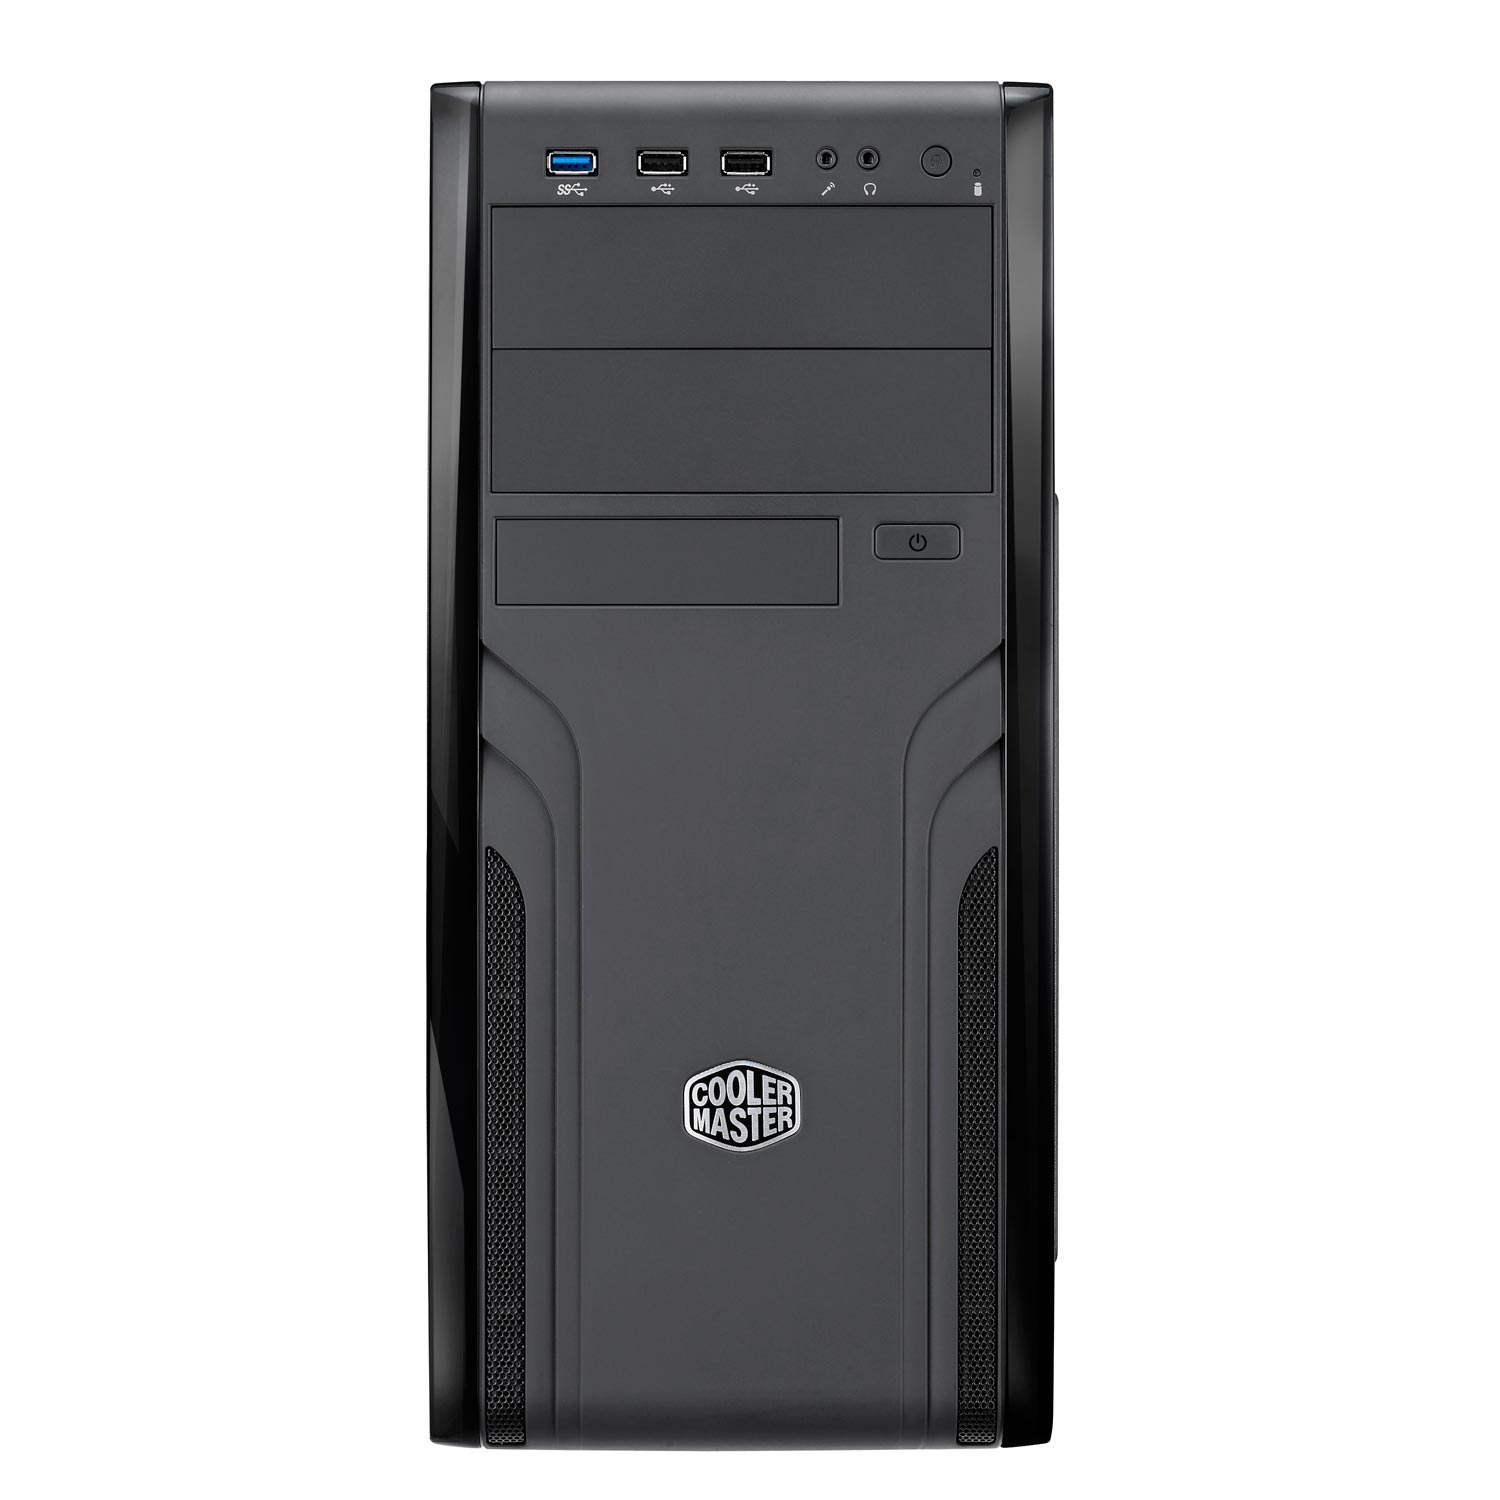 cooler master force 500 bo tier pc cooler master ltd sur ldlc. Black Bedroom Furniture Sets. Home Design Ideas